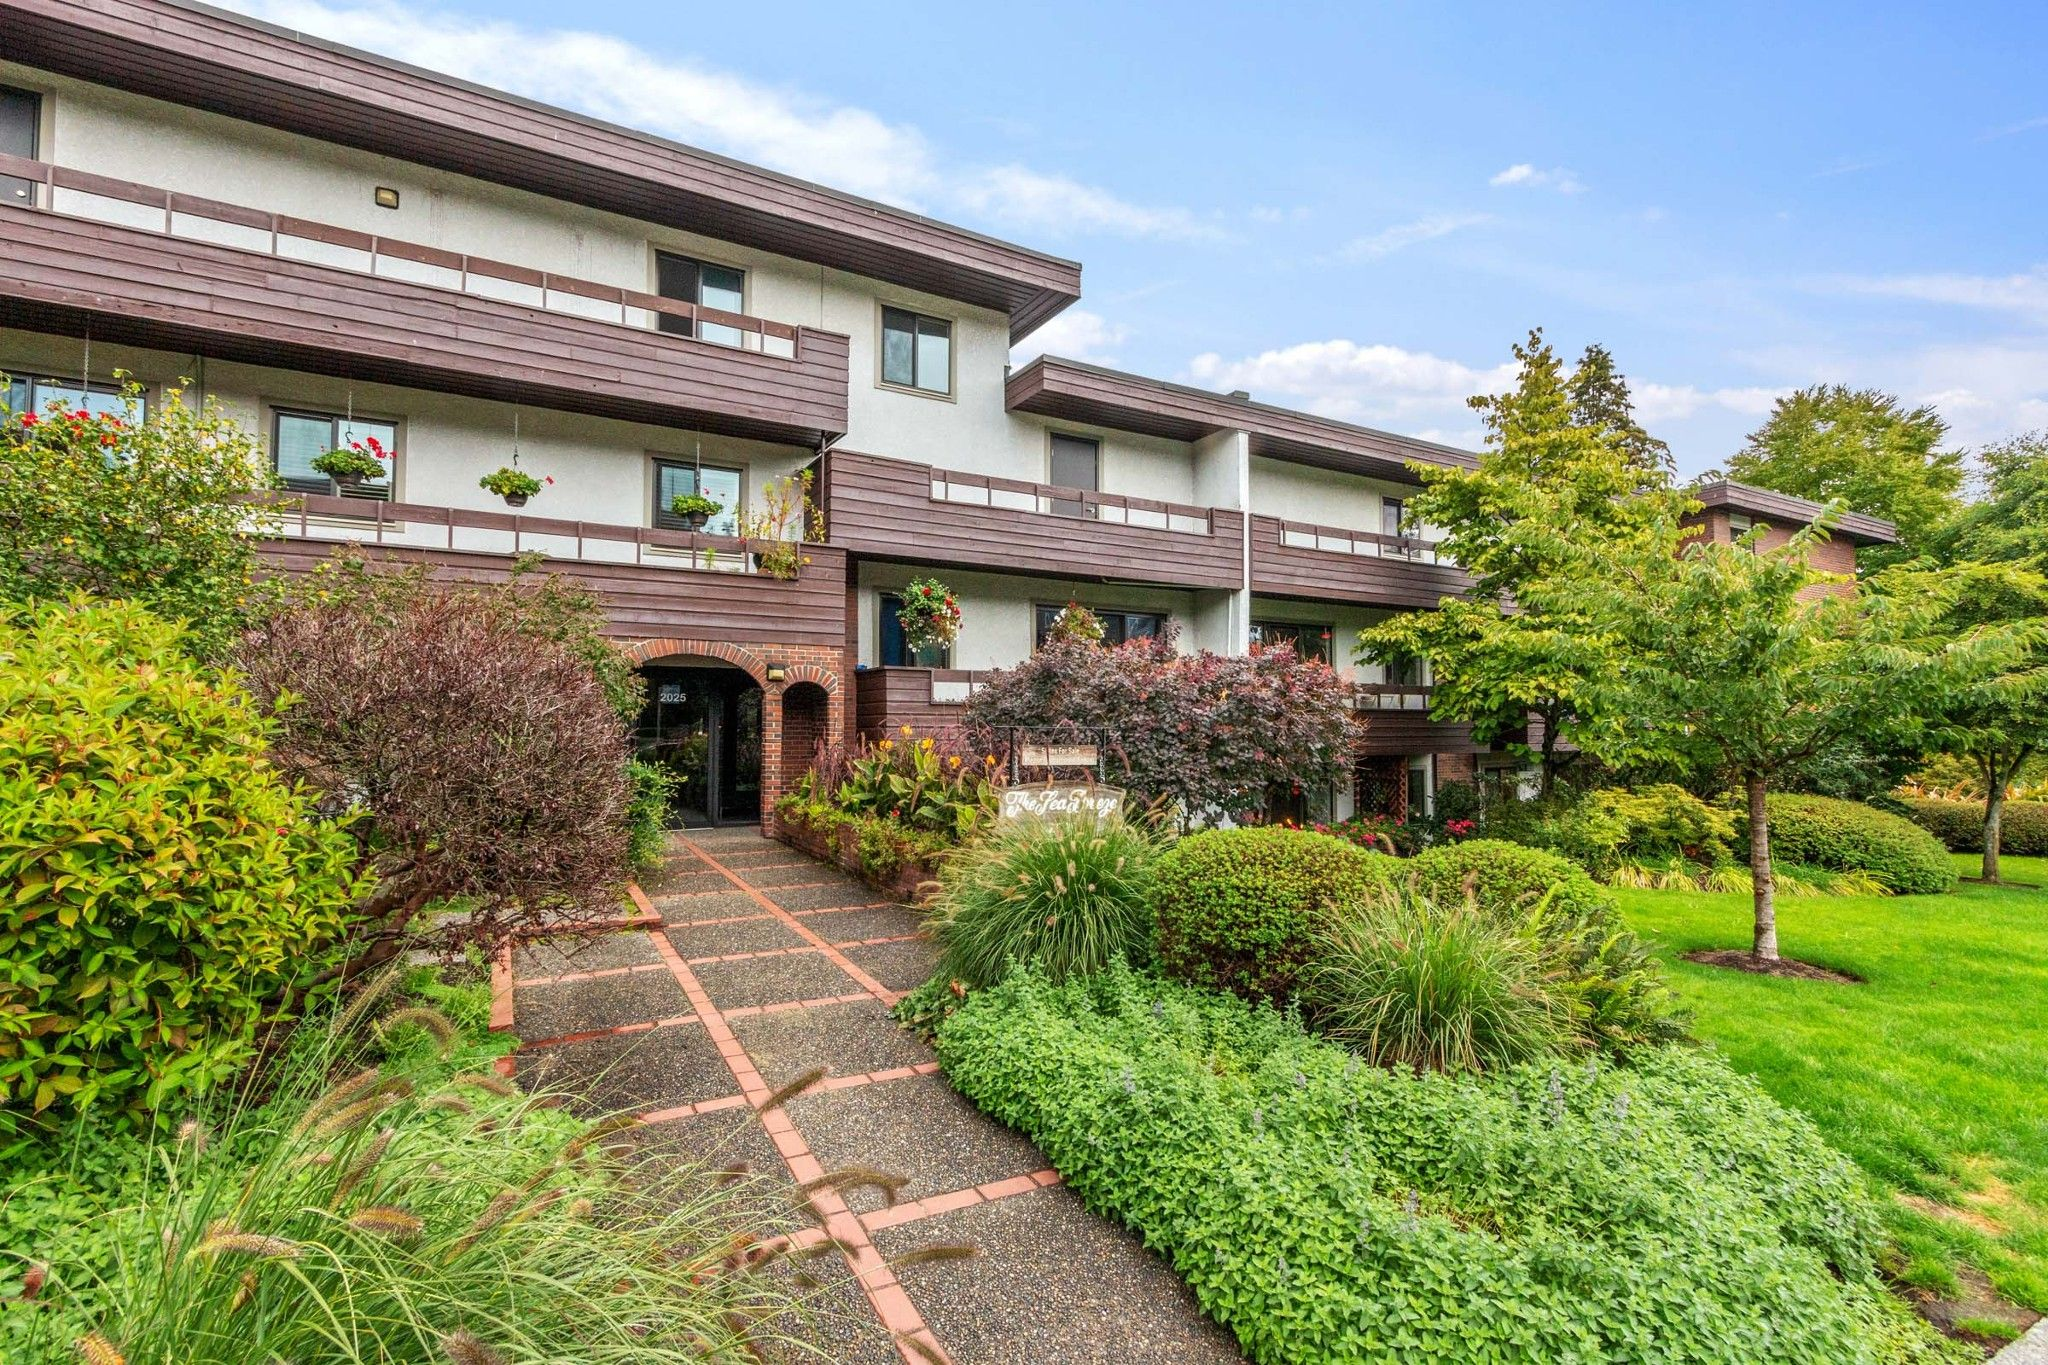 """Main Photo: 307 2025 W 2ND Avenue in Vancouver: Kitsilano Condo for sale in """"THE SEABREEZE"""" (Vancouver West)  : MLS®# R2620558"""